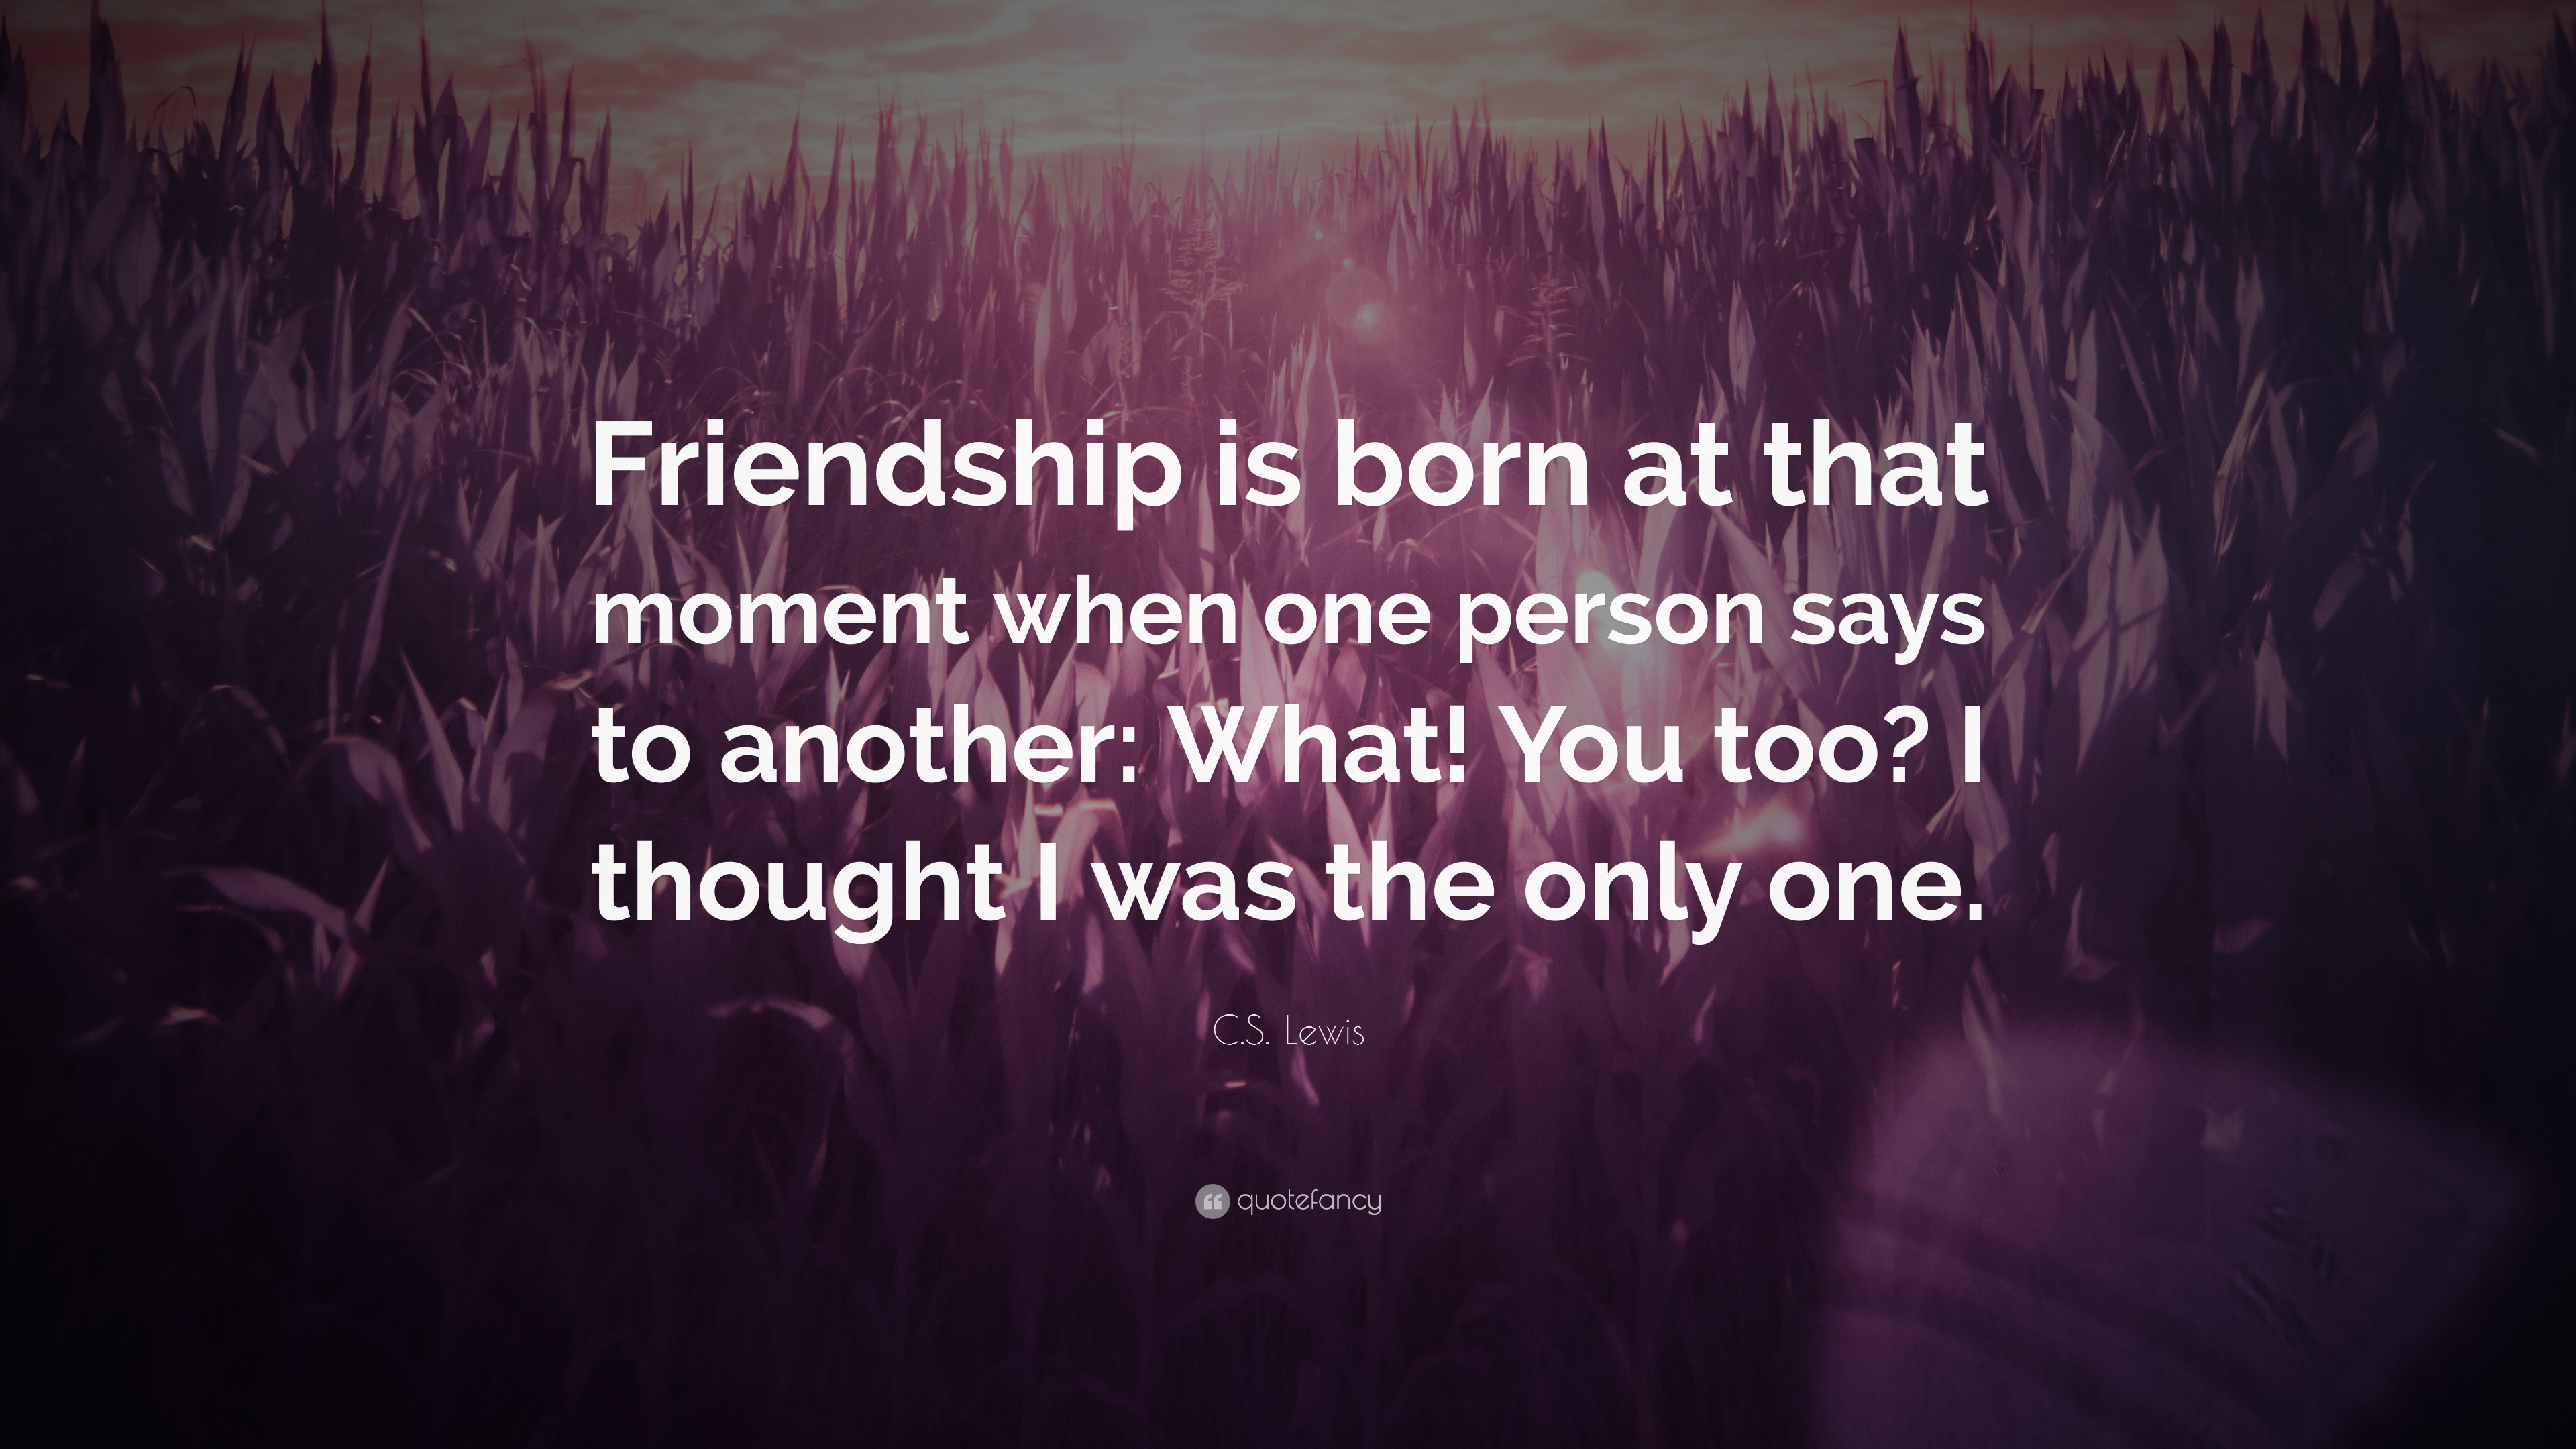 Inspiring Quotes About Friendship Friendship Quotes 21 Wallpapers  Quotefancy